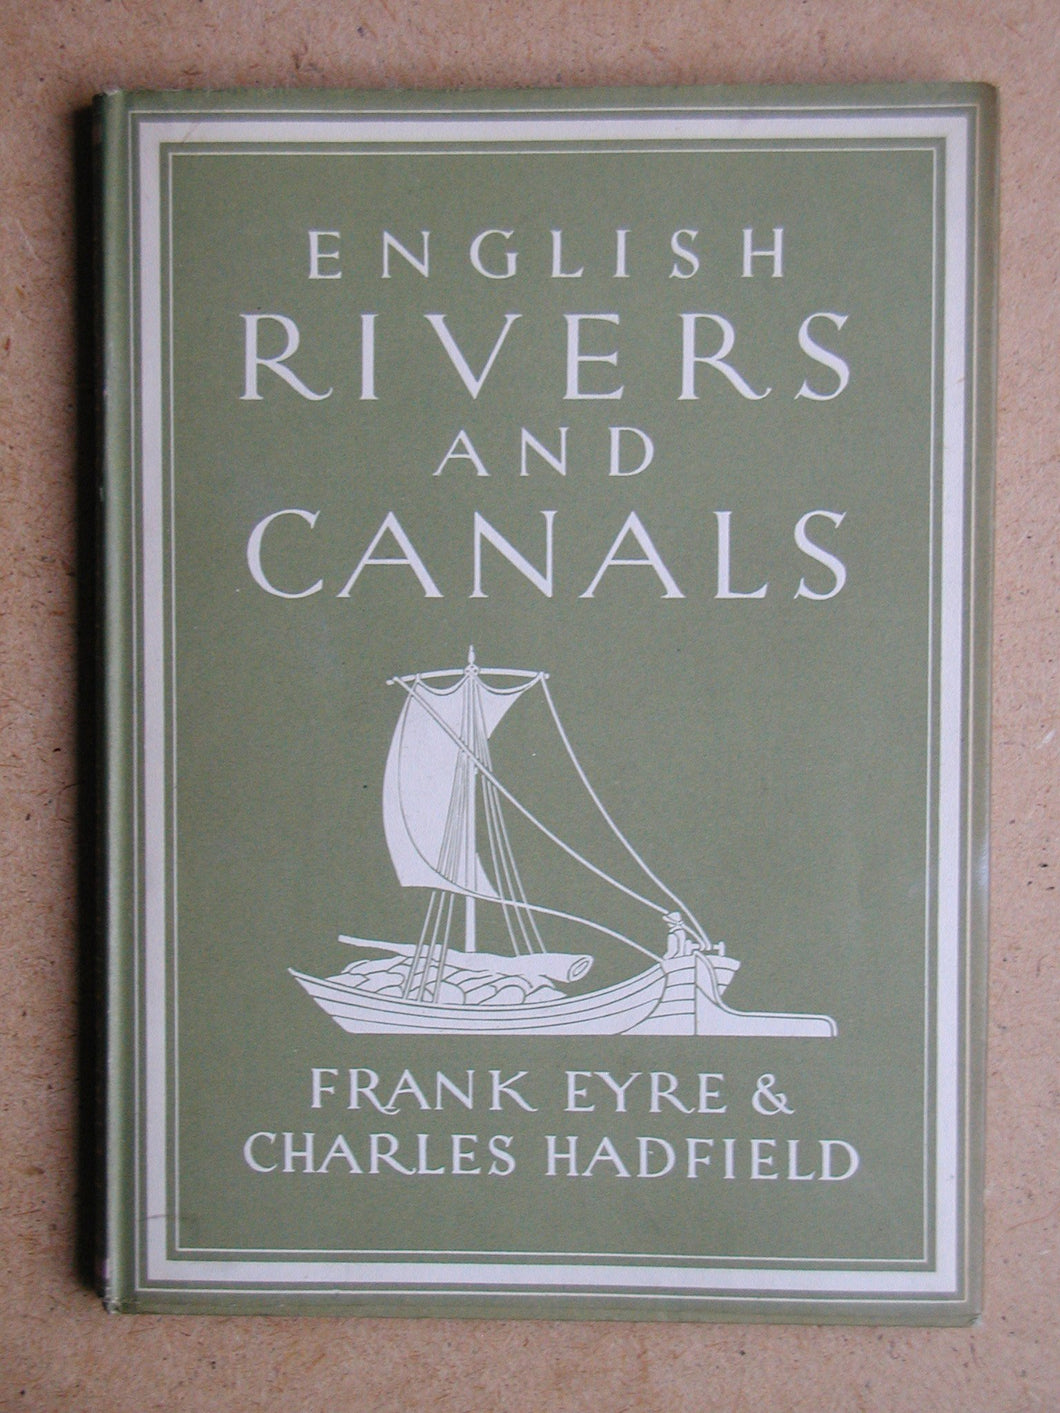 English Rivers and Canals [Hardcover] Eyre, Frank & Charles Hadfield.